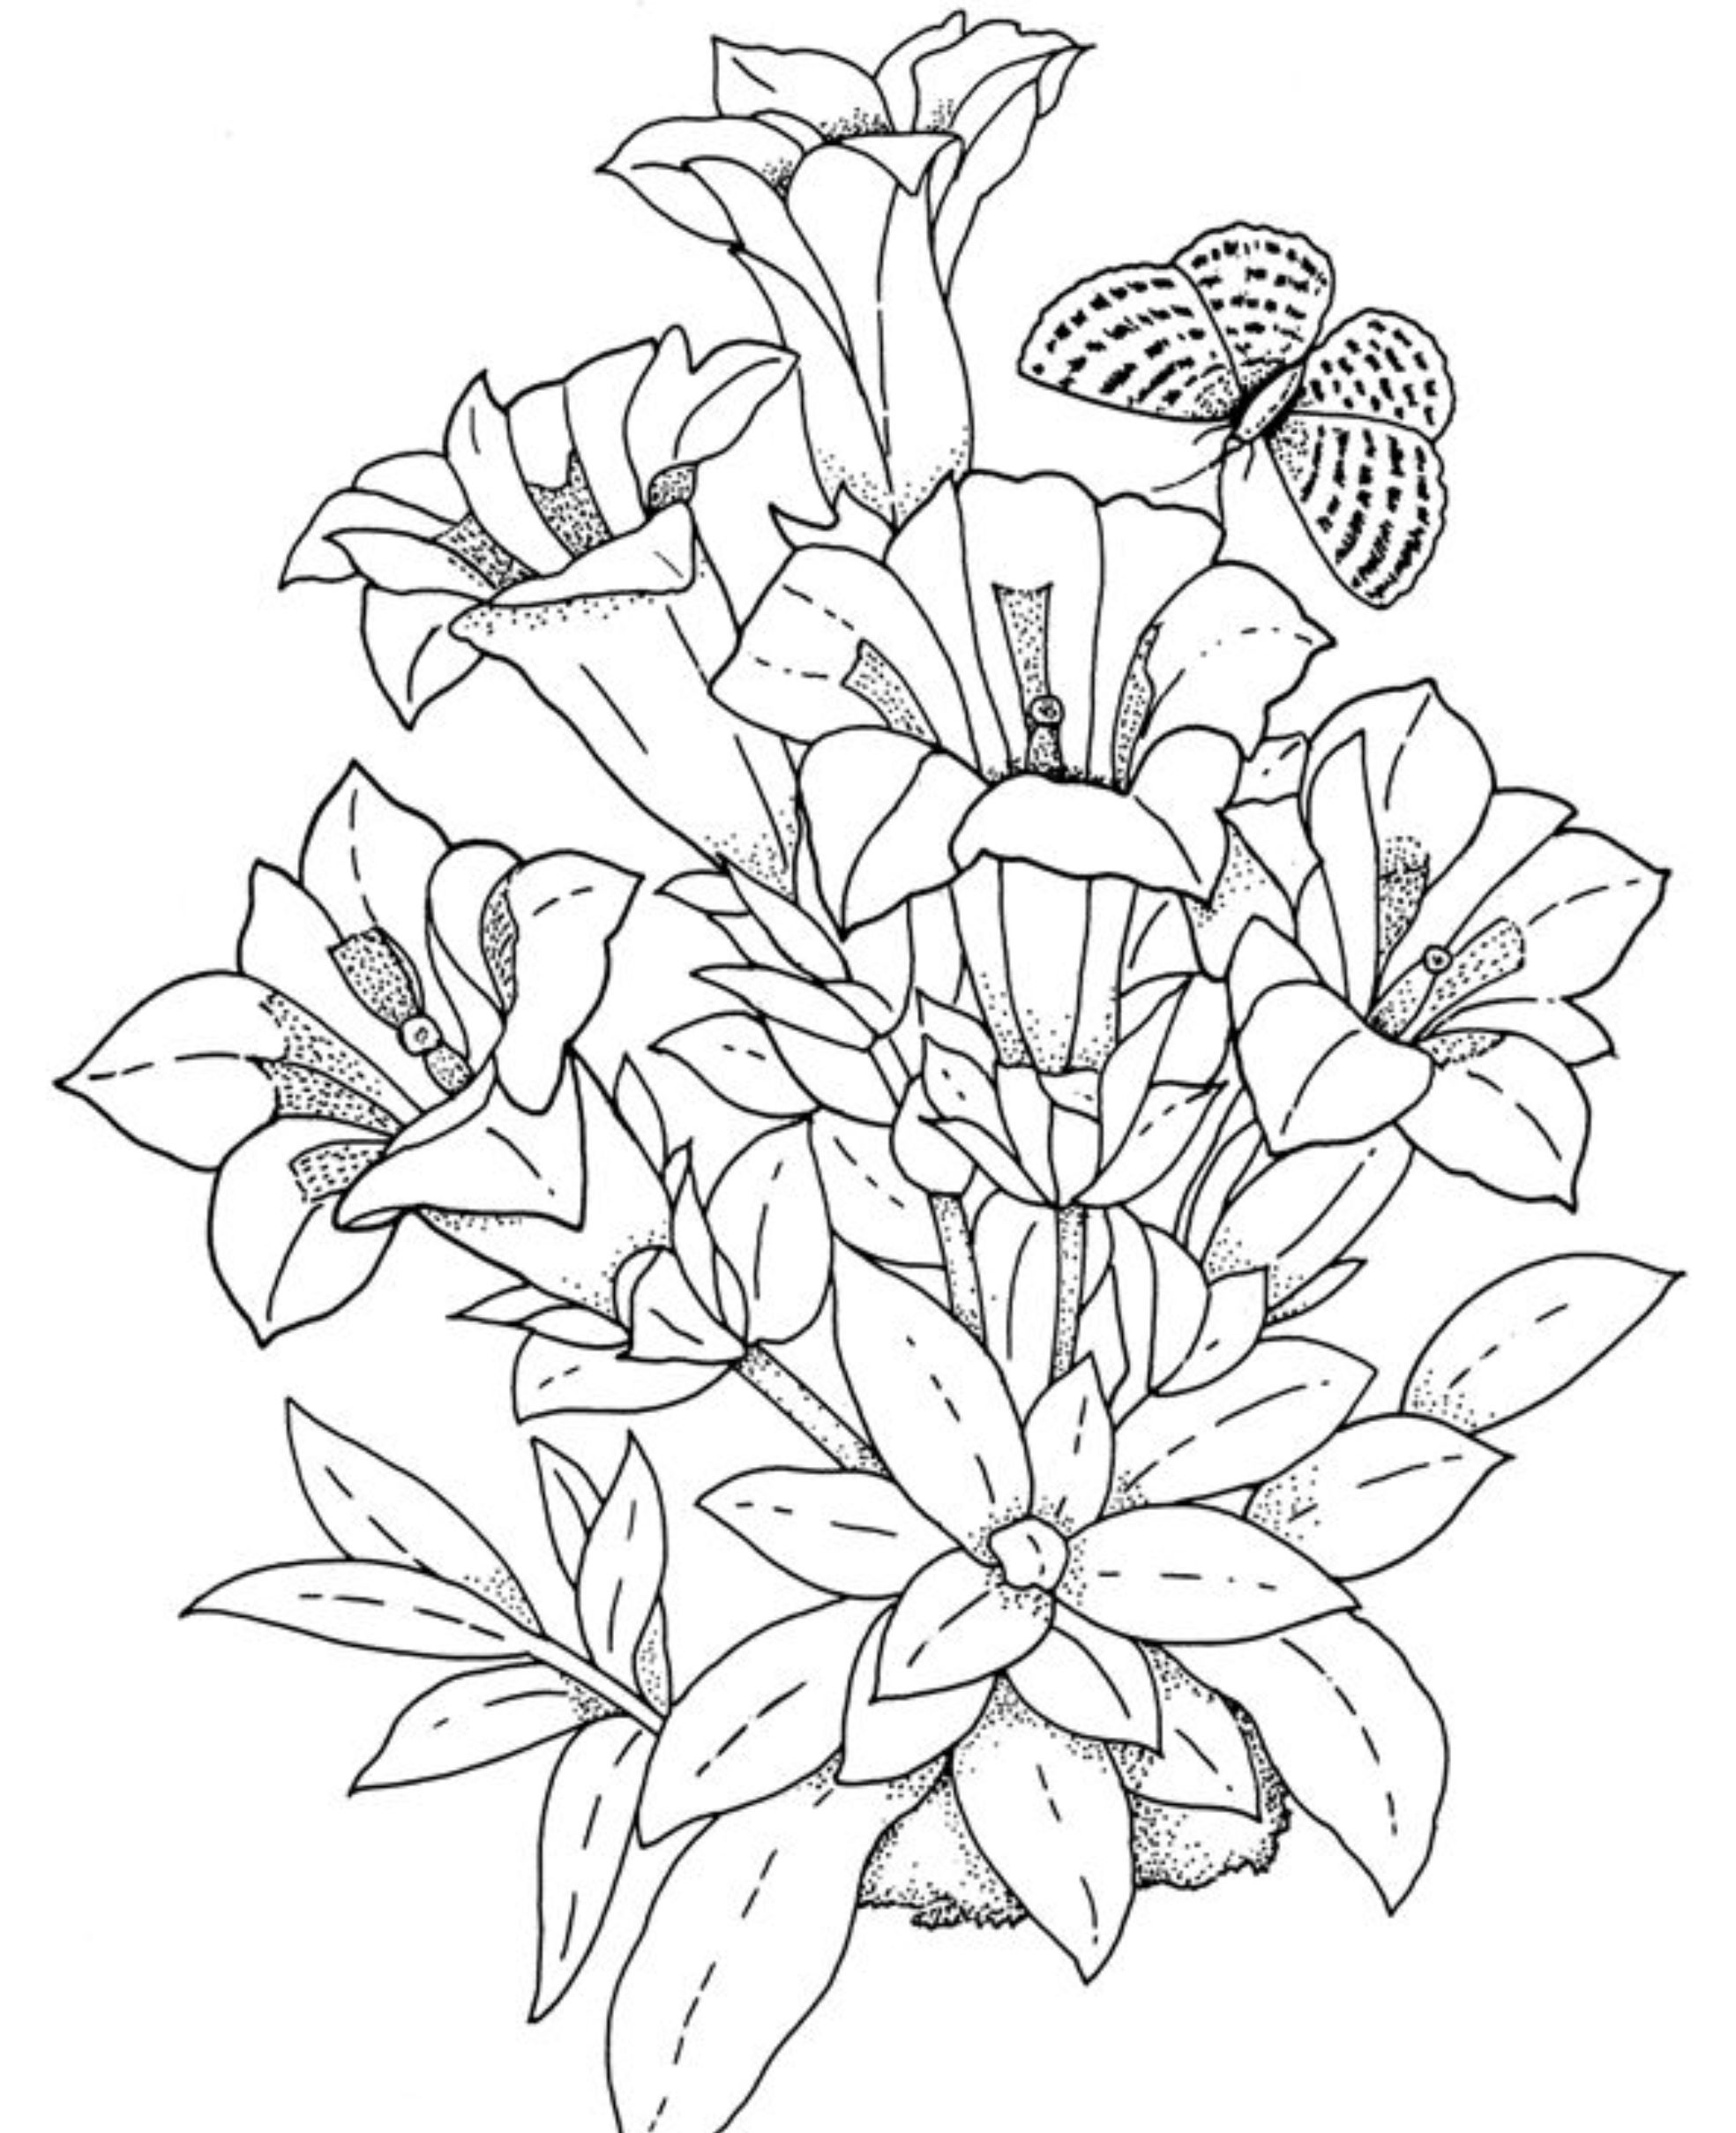 flowers coloring pages pinterest - photo#12